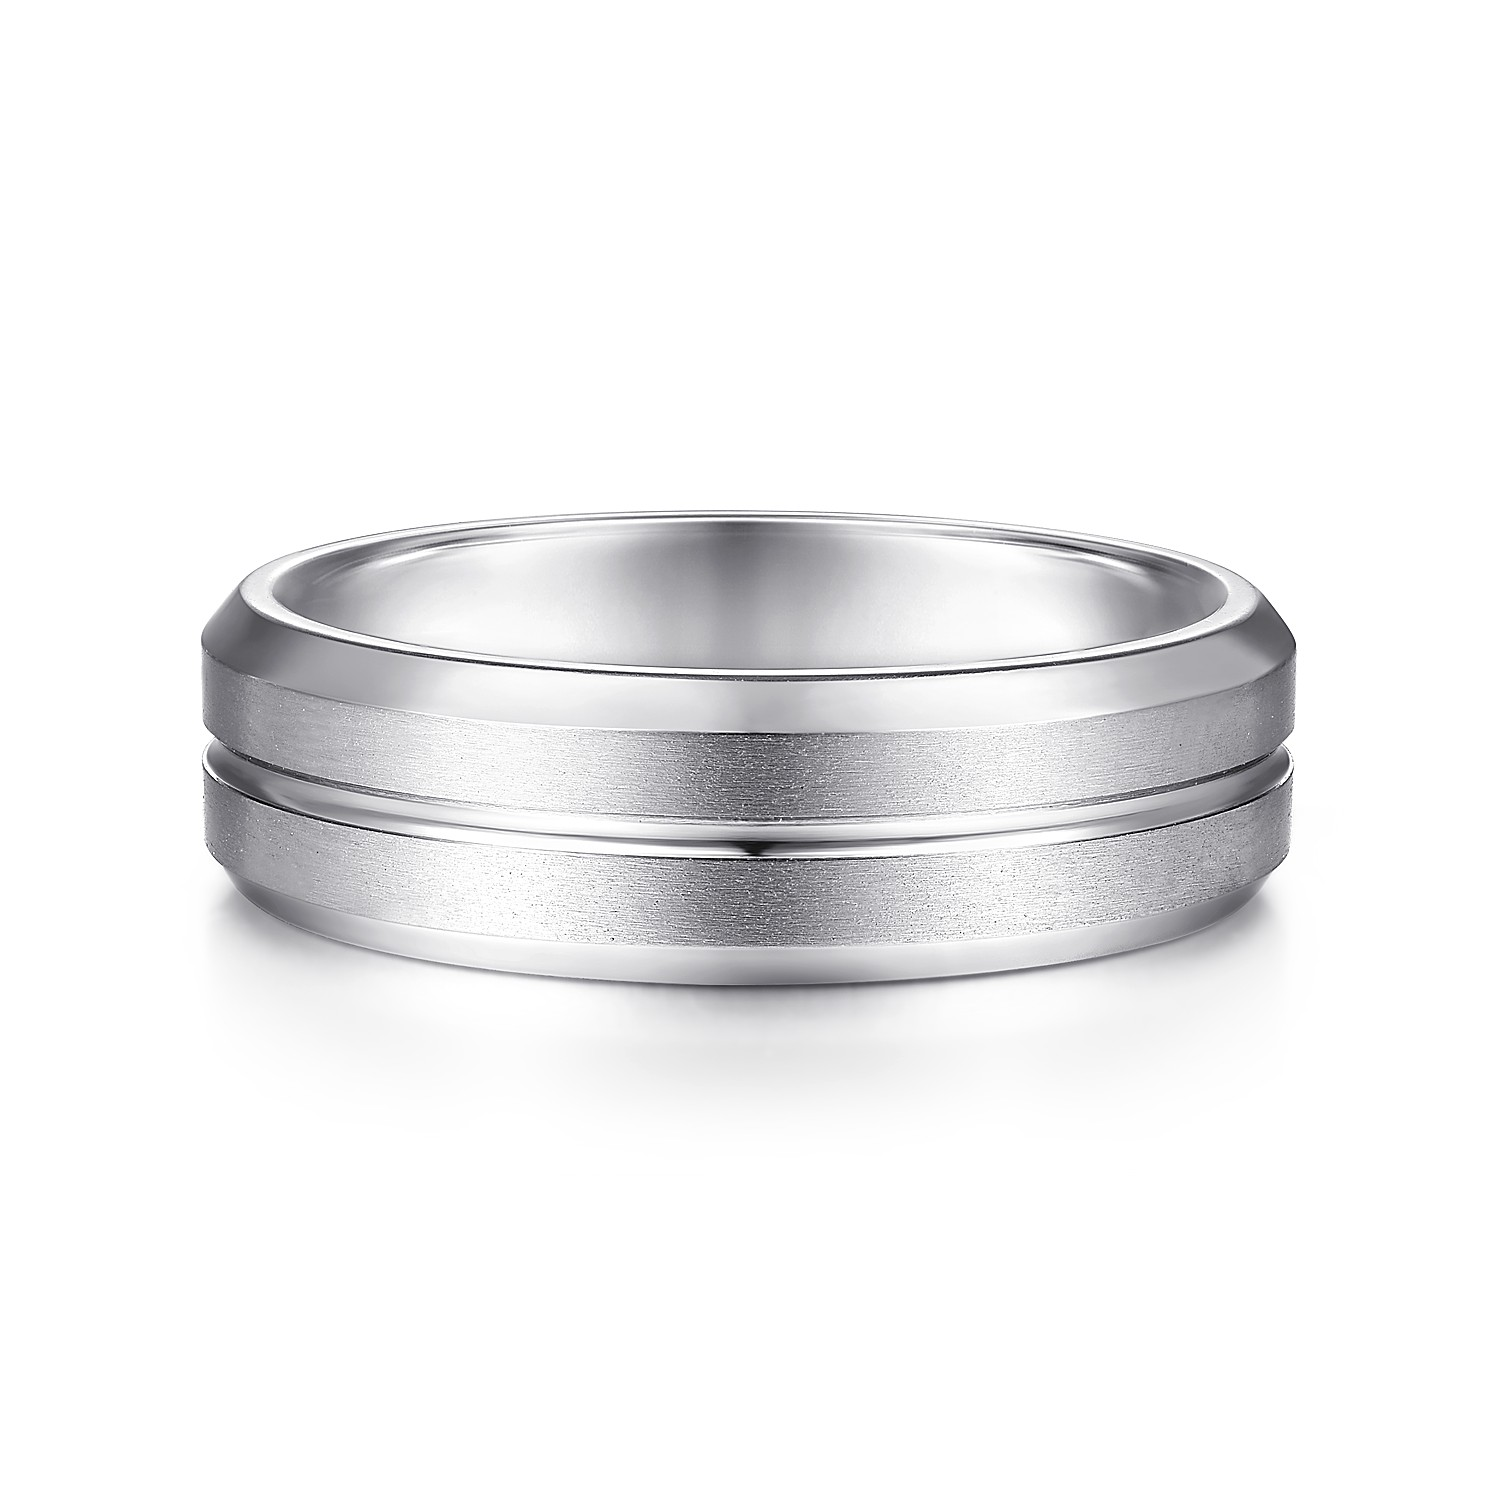 Details about  /Stainless Steel Grooved and Beaded 6 MM Polished Wedding Band